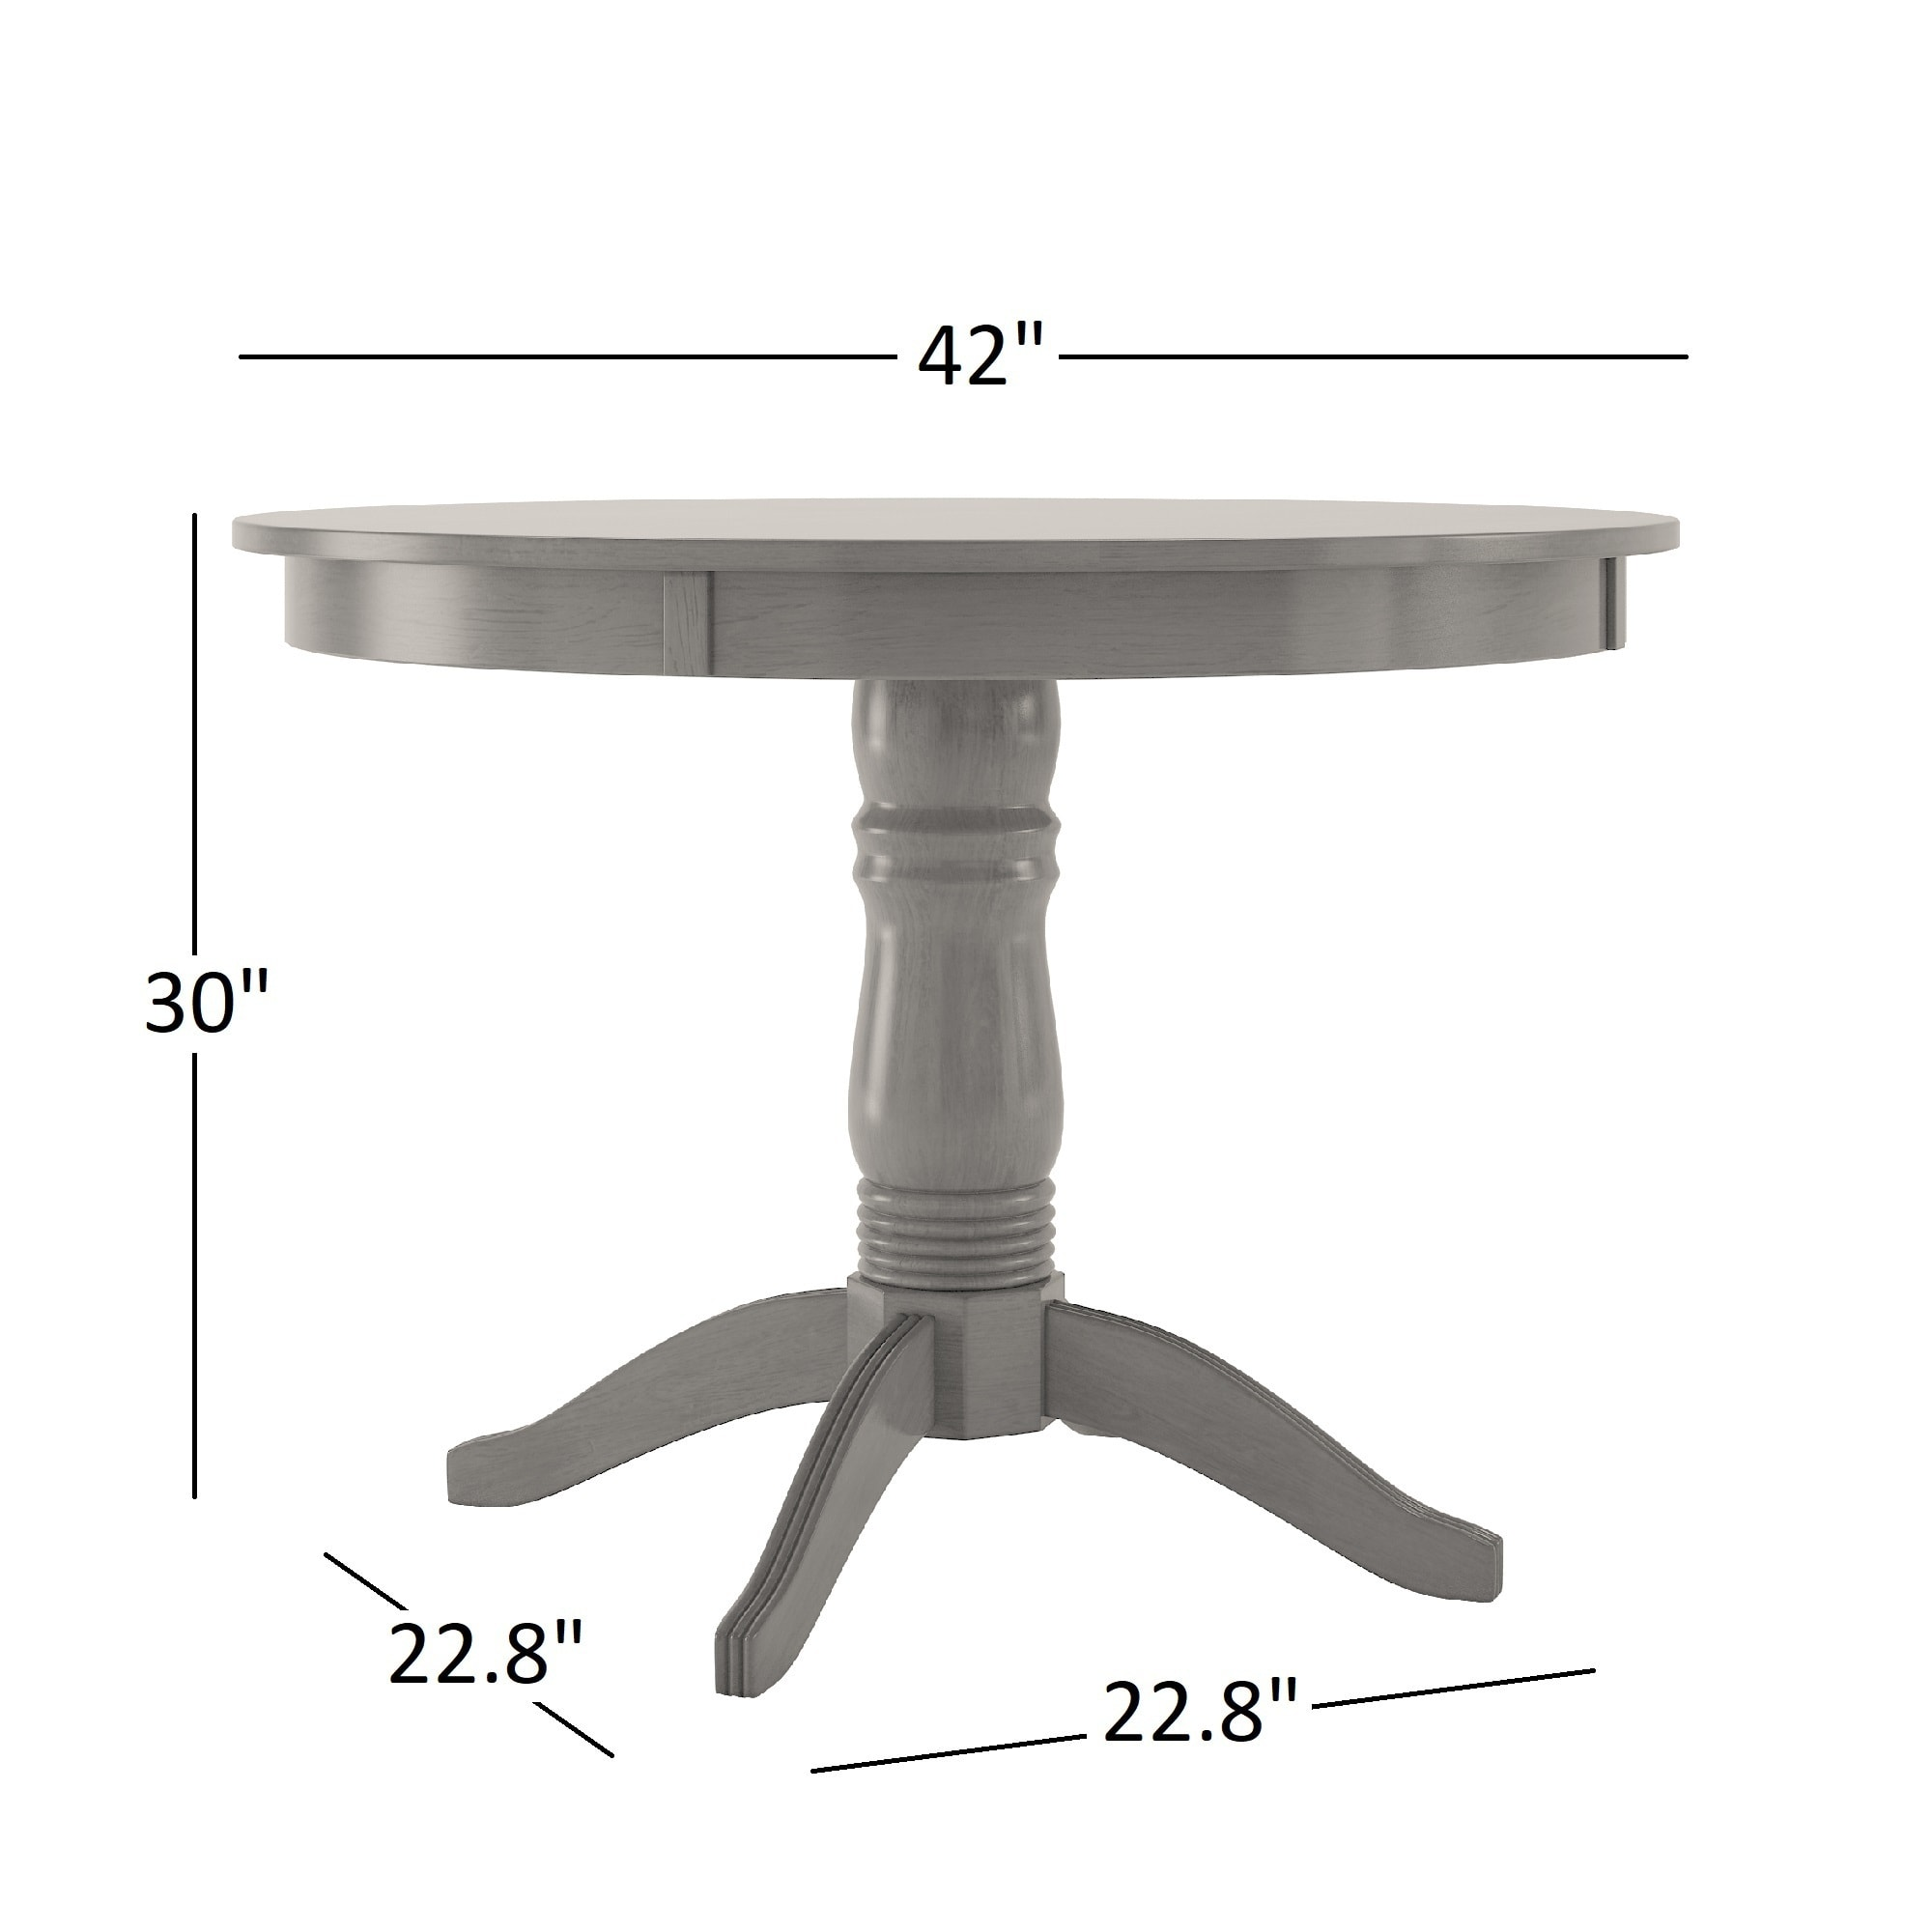 pin from pedestal the dining inch ascension can height to be table adjusted round